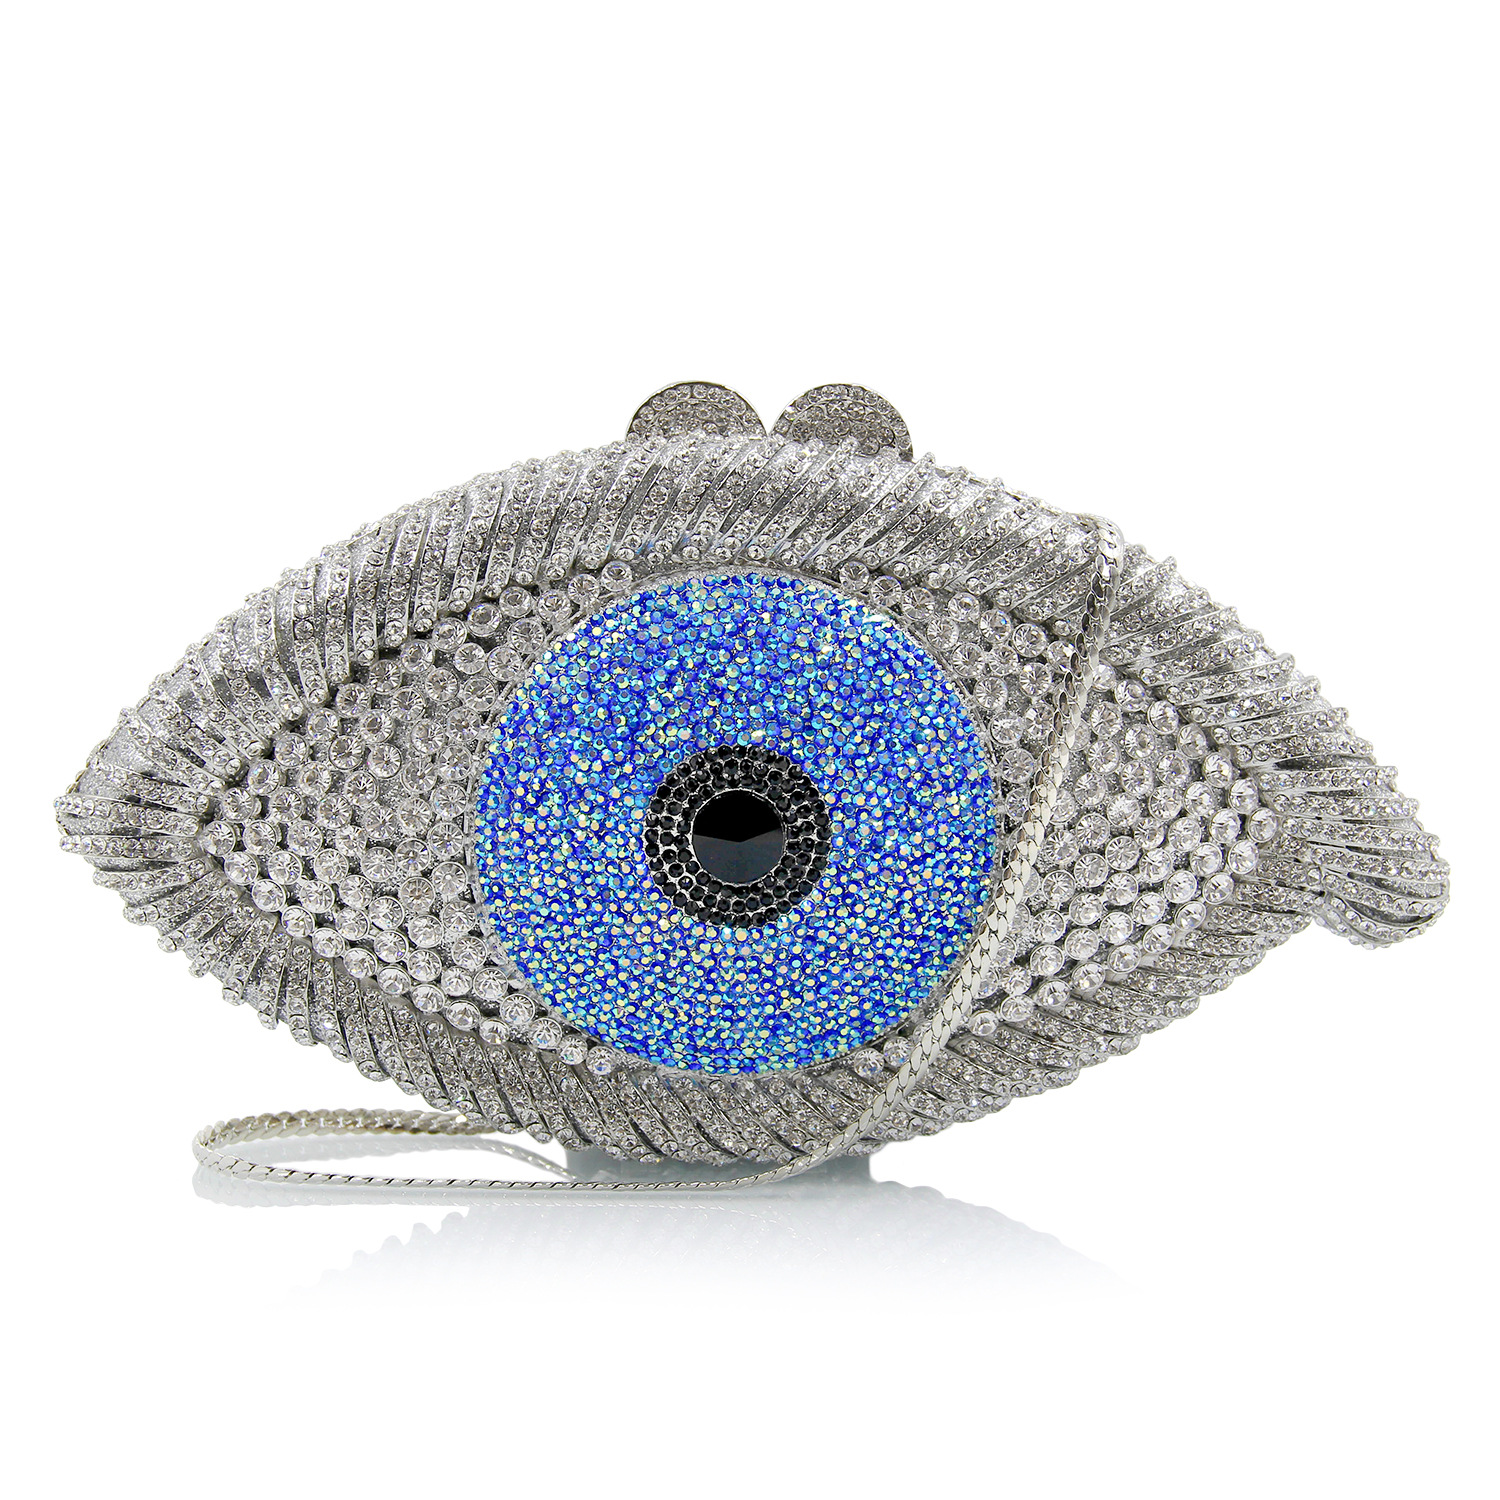 Women Crystal Cartoon Evening Bag Ladies Evil Eye Shape Clutch Bags Female Wedding Purses And handbags Evening Bag With Chain luxury crystal clutch bags uk hot sale pillow shaped white pearl clutch handbags for cheap women crystal evening bag with chain